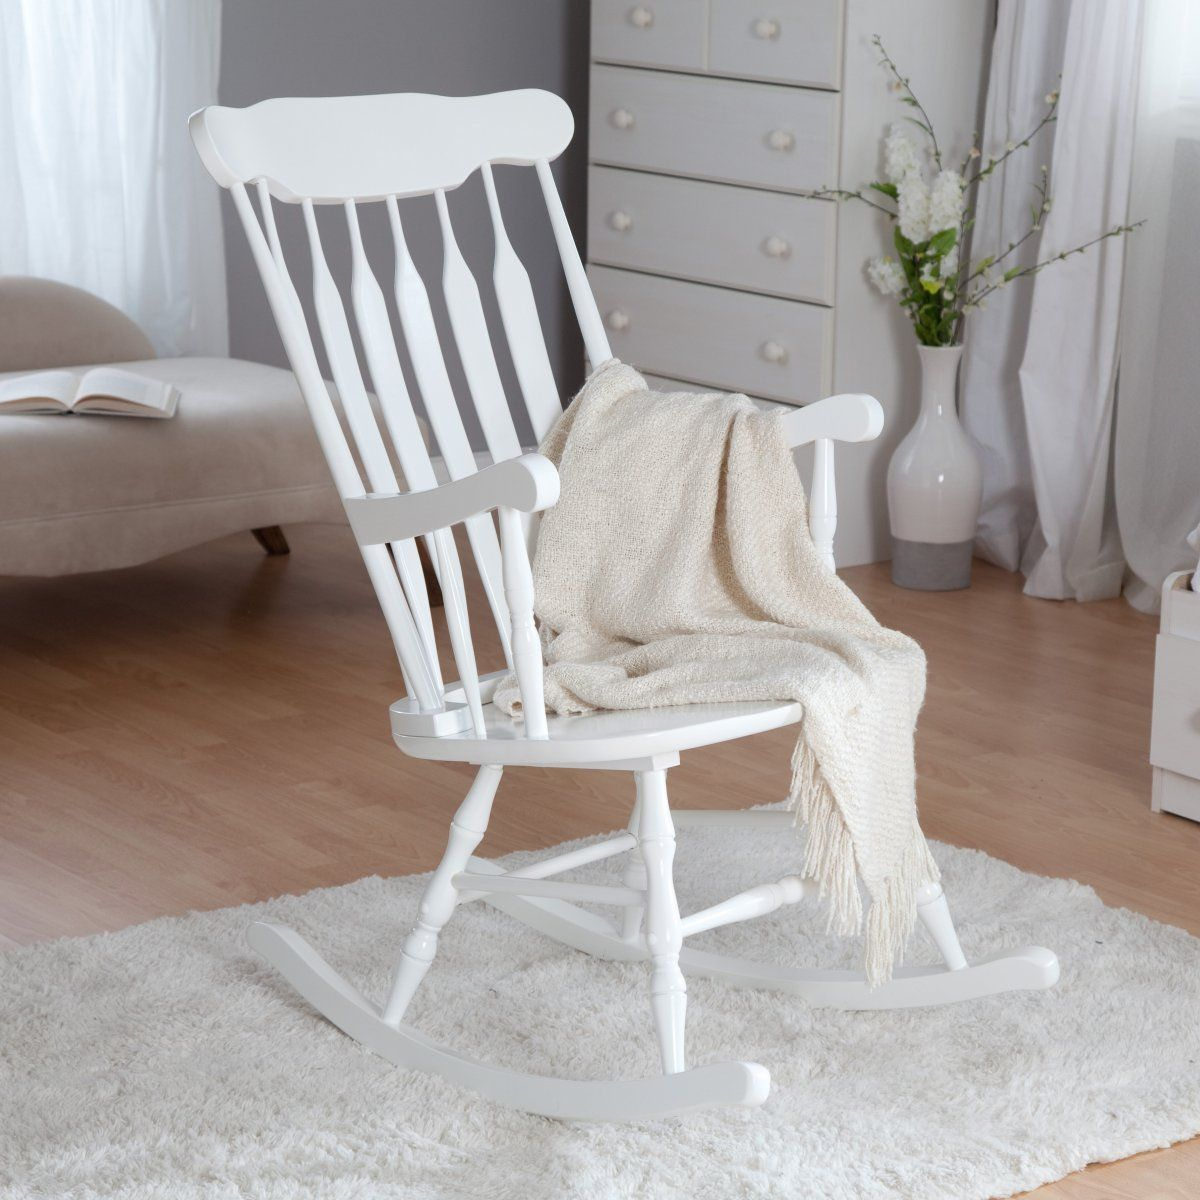 white wooden rocking chair canada commode over toilet kidkraft nursery rocker chairs at